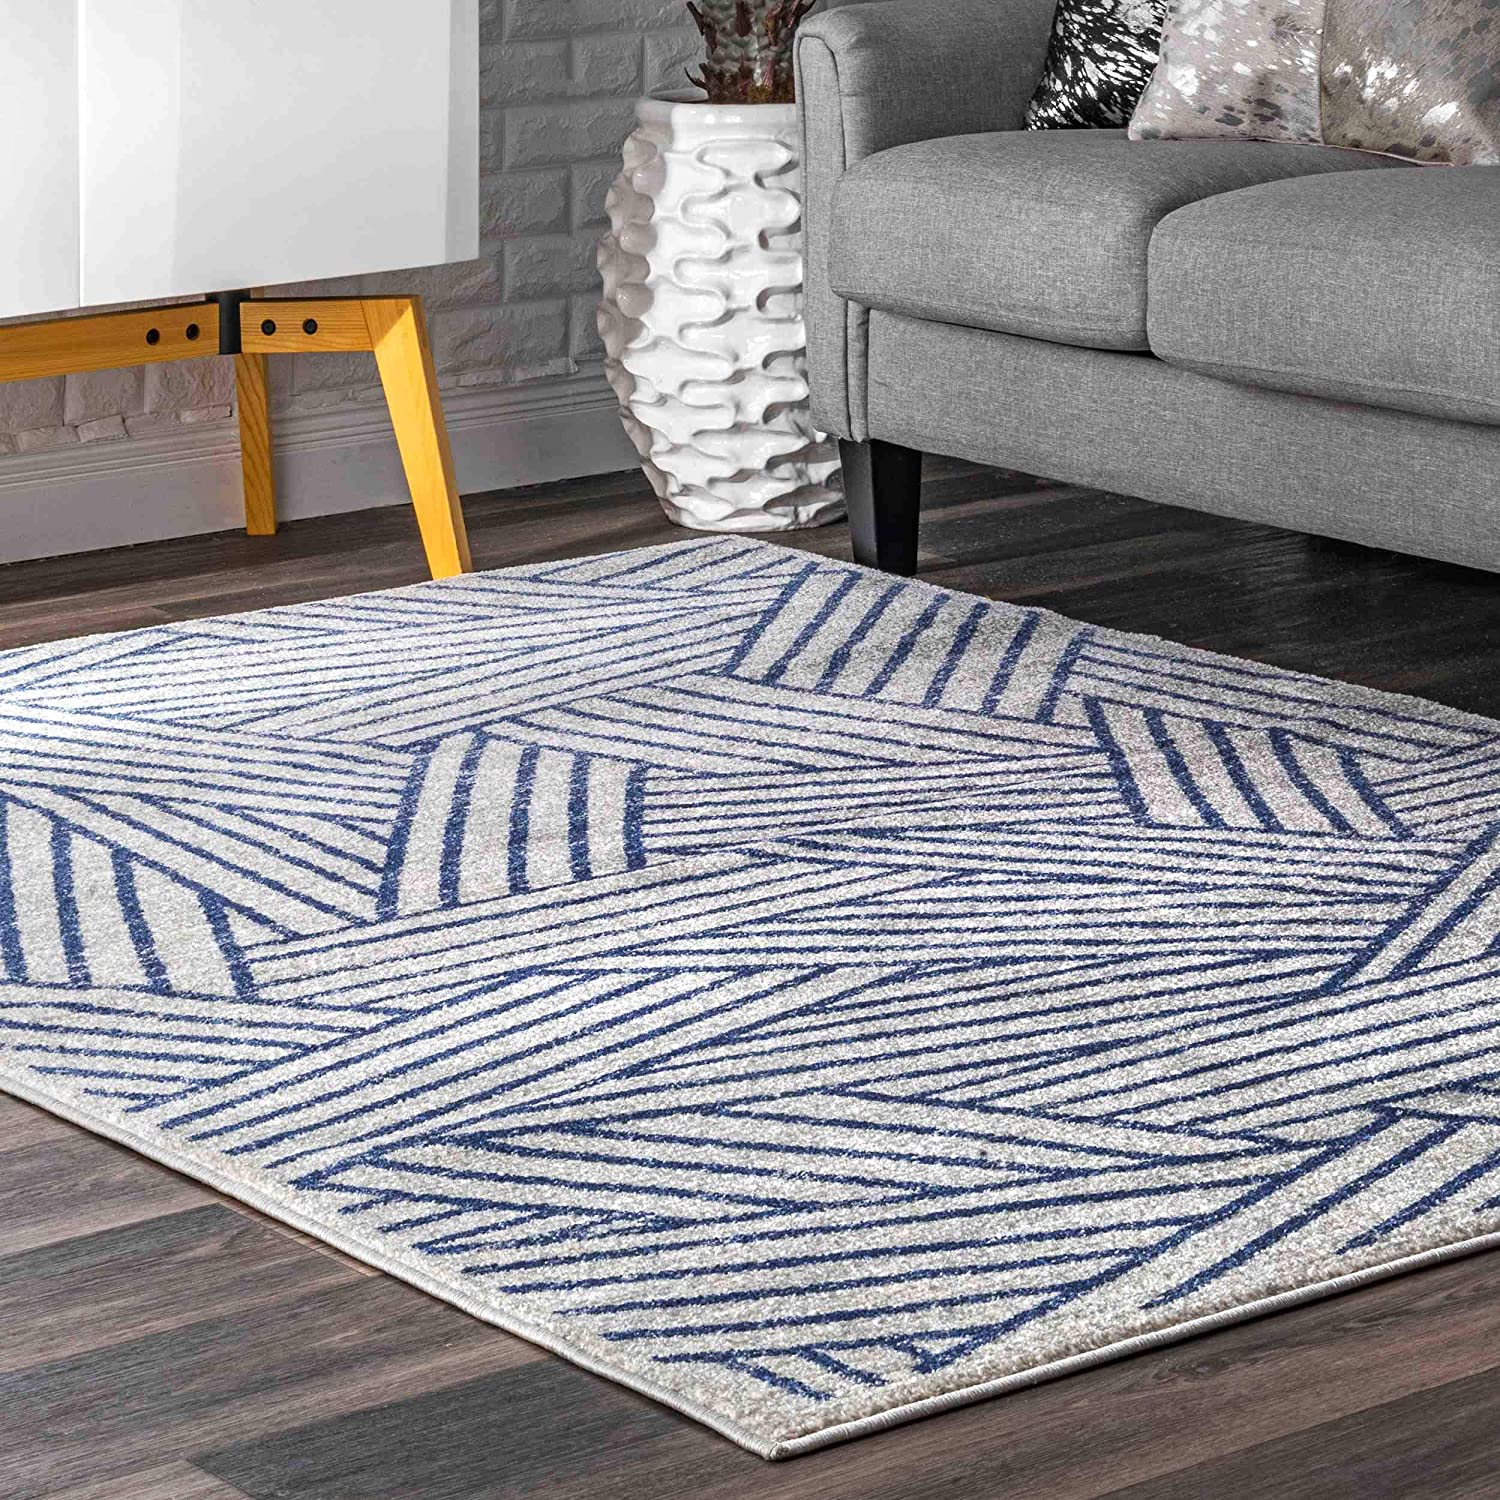 Don't miss the campaign nuLOOM Blanca Selling rankings Contemporary Striped Area 8' Rug x Blue 5'